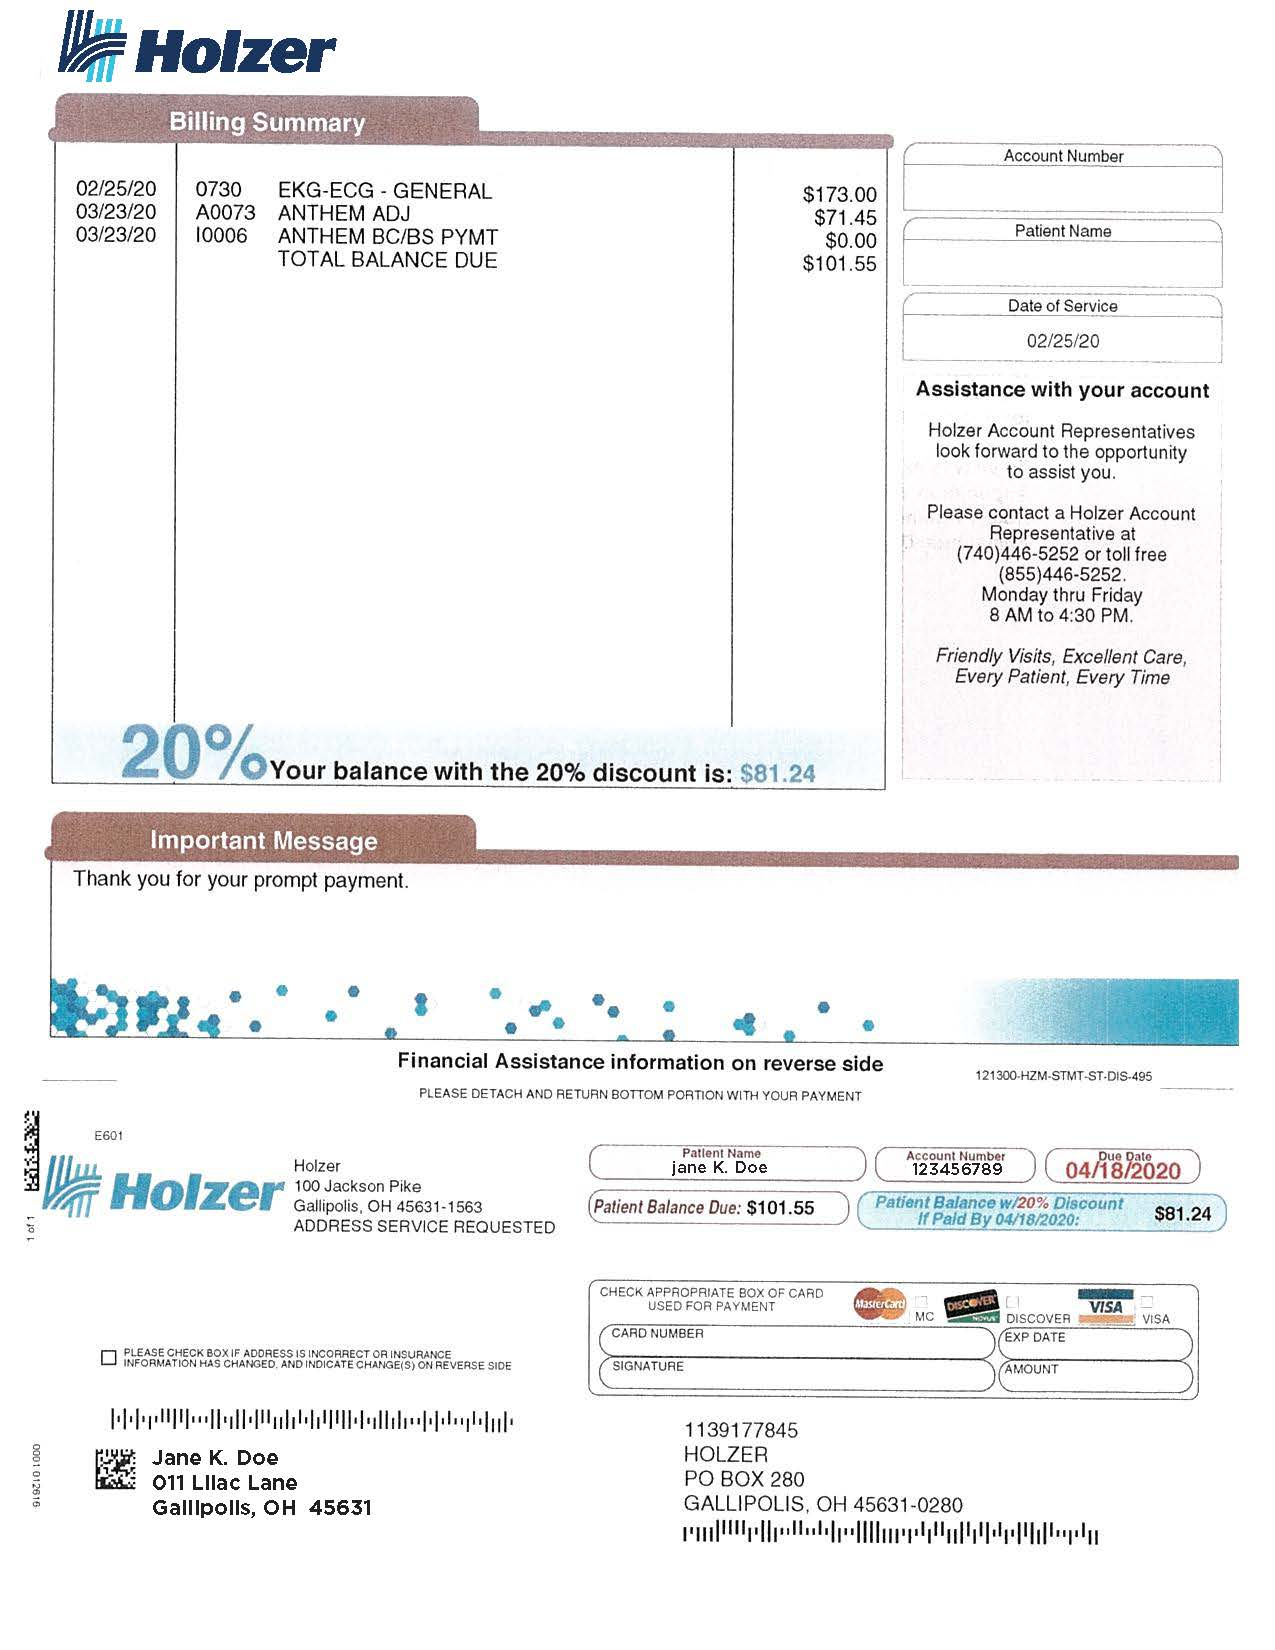 Holzer Medical Center Bill